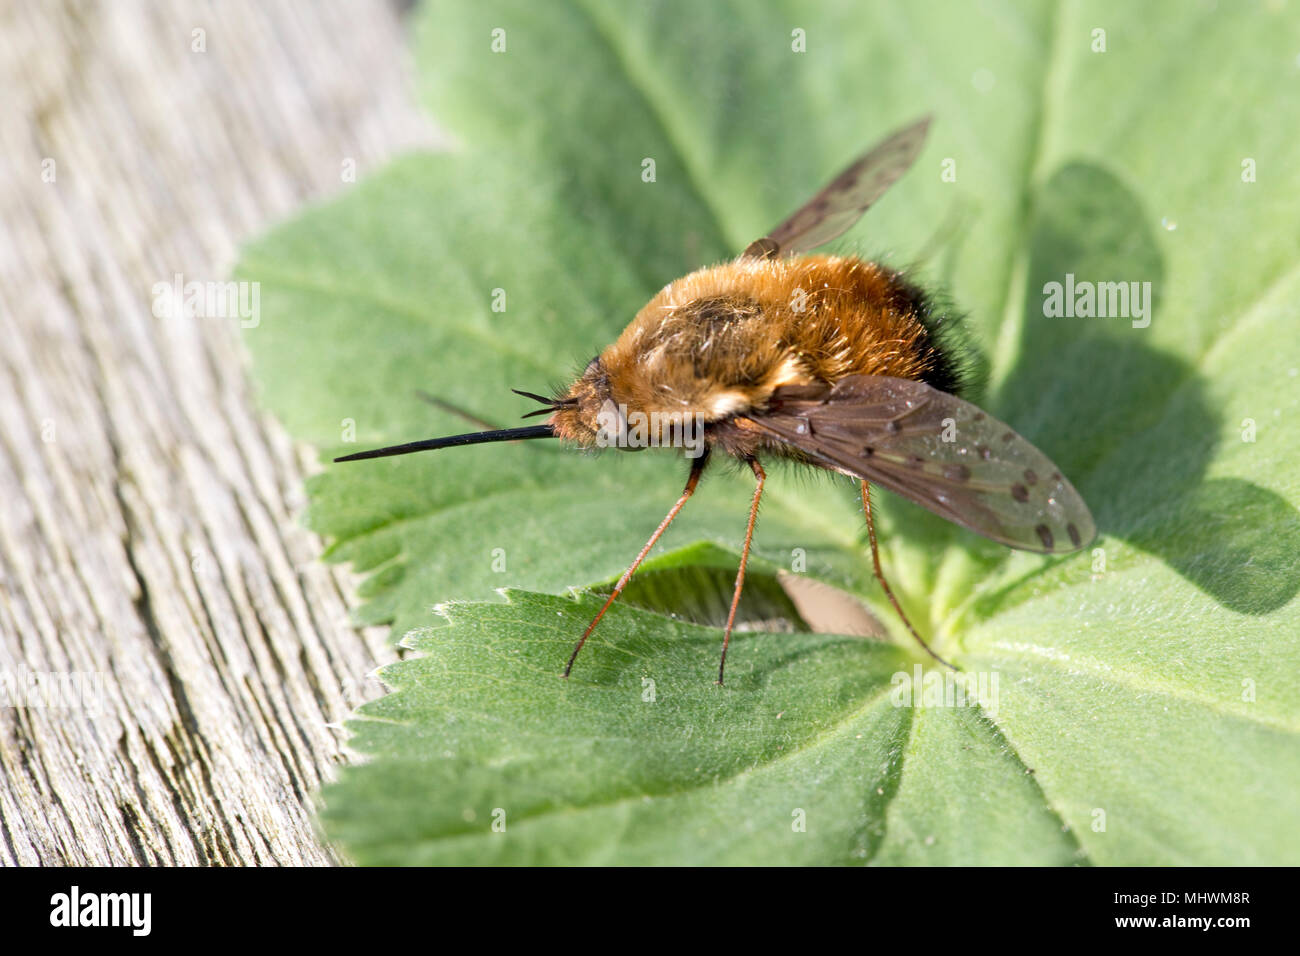 Bee fly with long proboscis resting on leaf Cotswolds UK - Stock Image